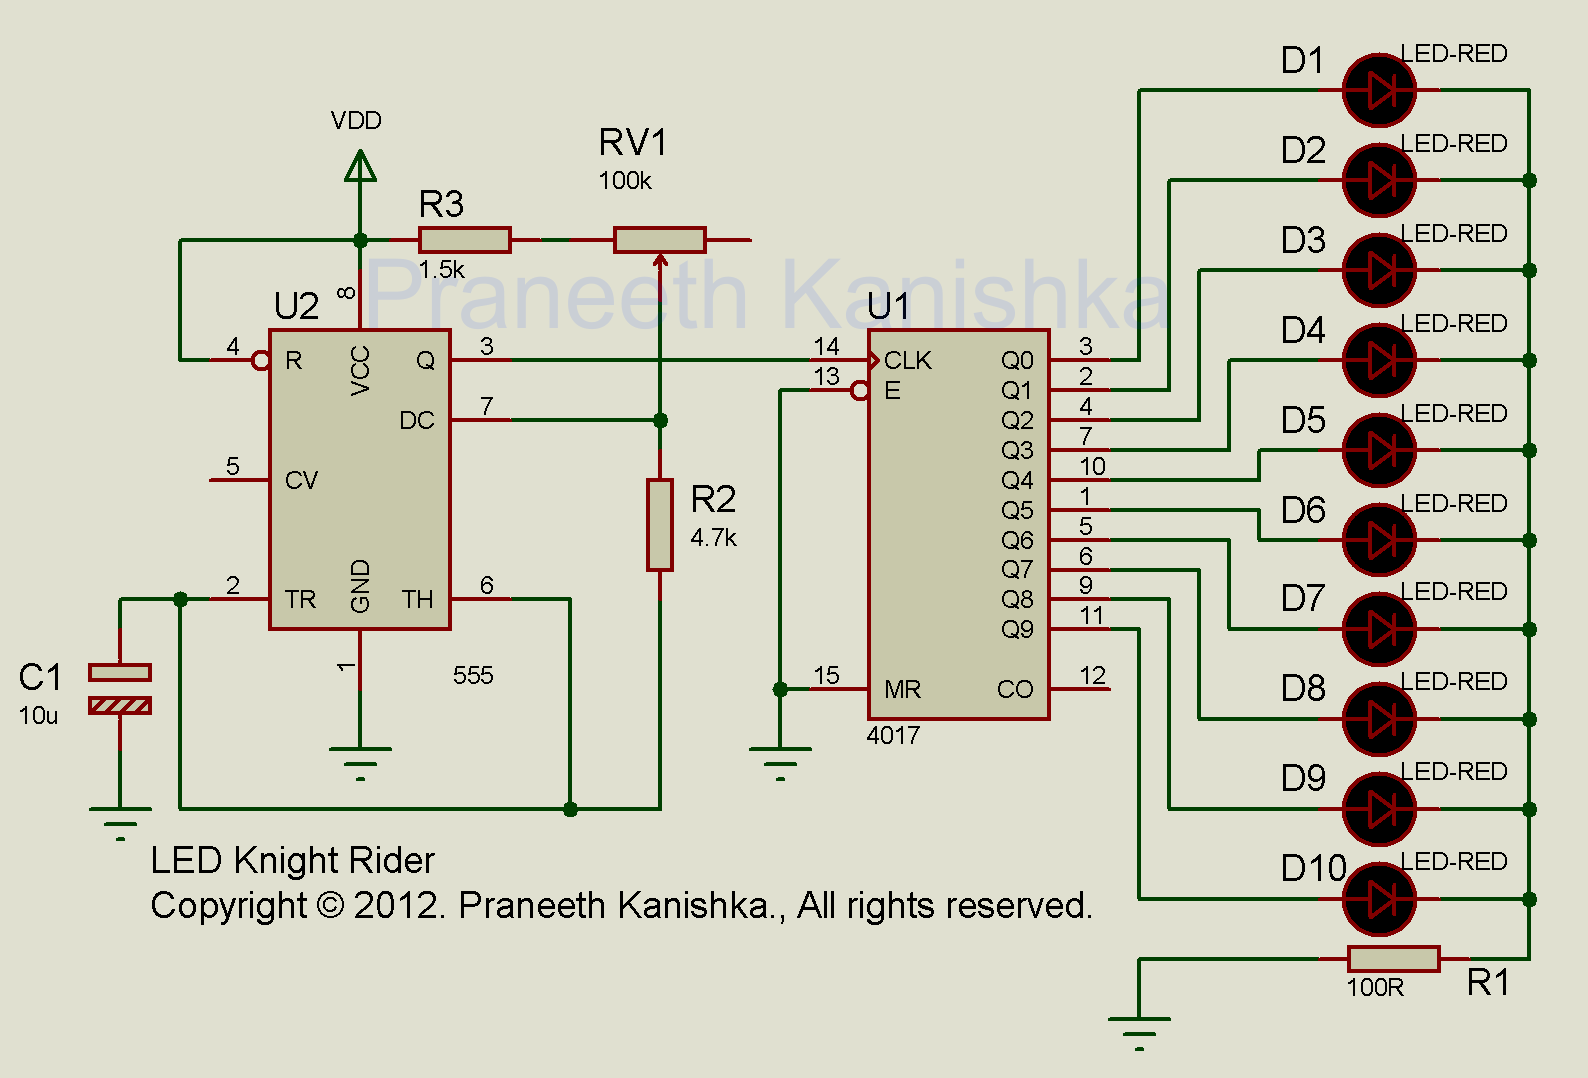 11 led knight rider project circuit diagram wiring diagram yer 4017 led knight rider running light circuit diagram circuit wiring [ 1588 x 1078 Pixel ]